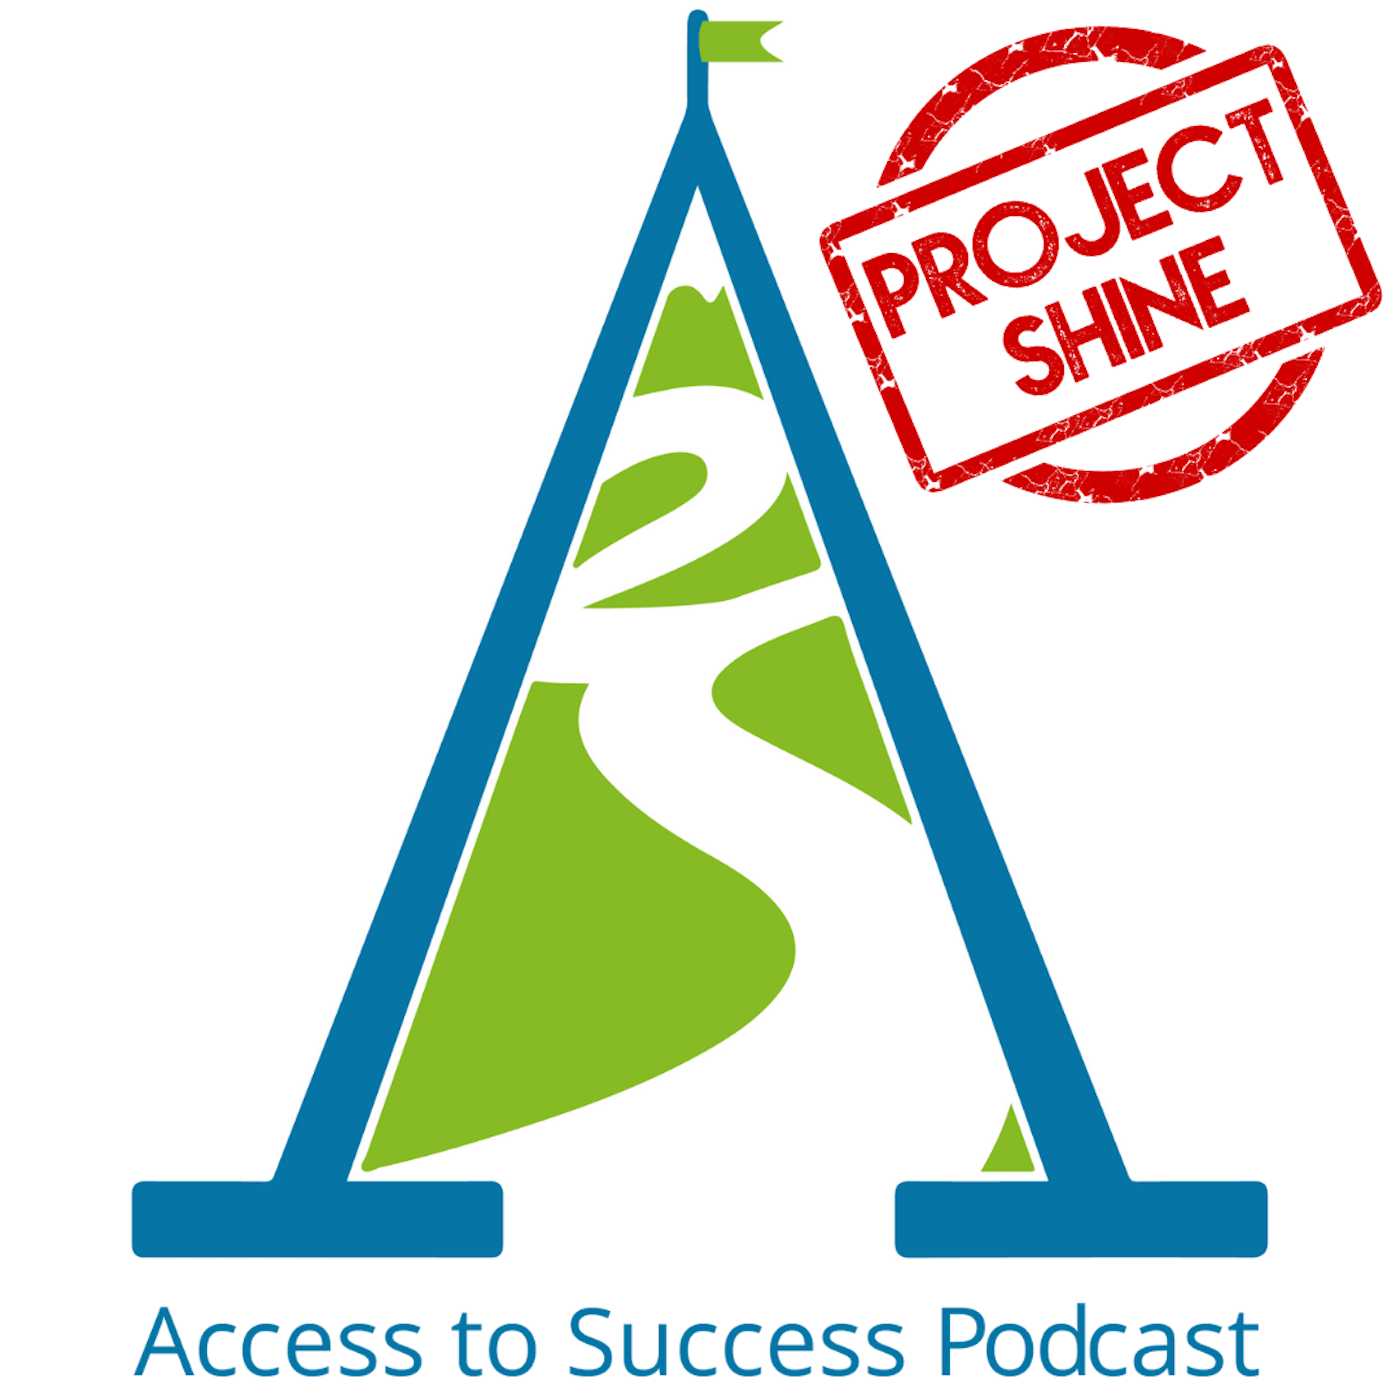 Access to Success Podcast show art